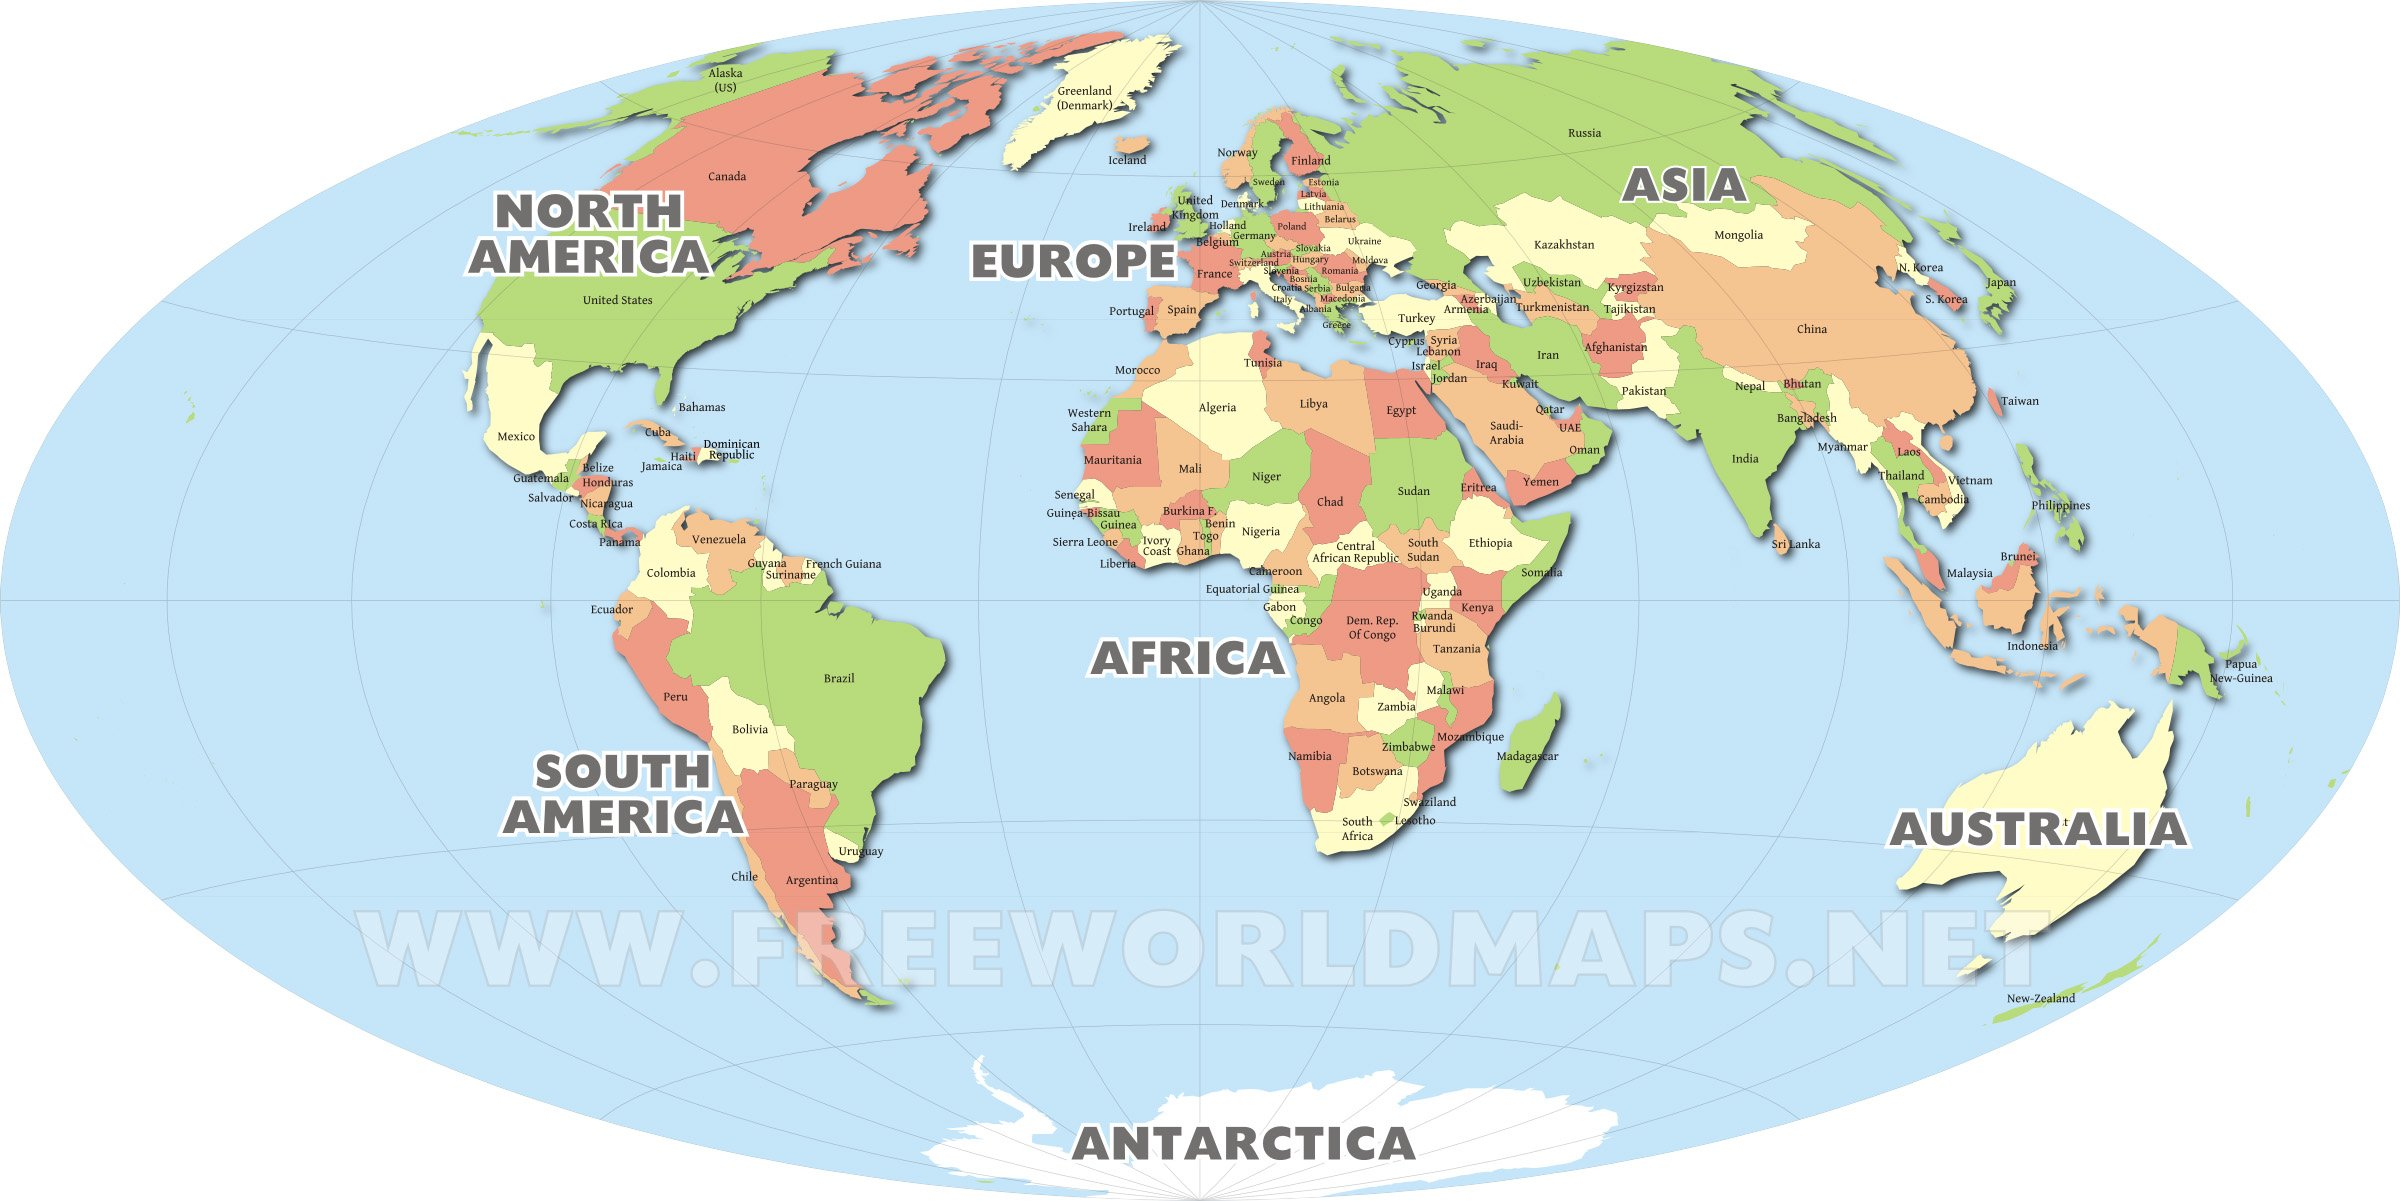 Royal geographical society geography resources for teachers global freerunsca Choice Image